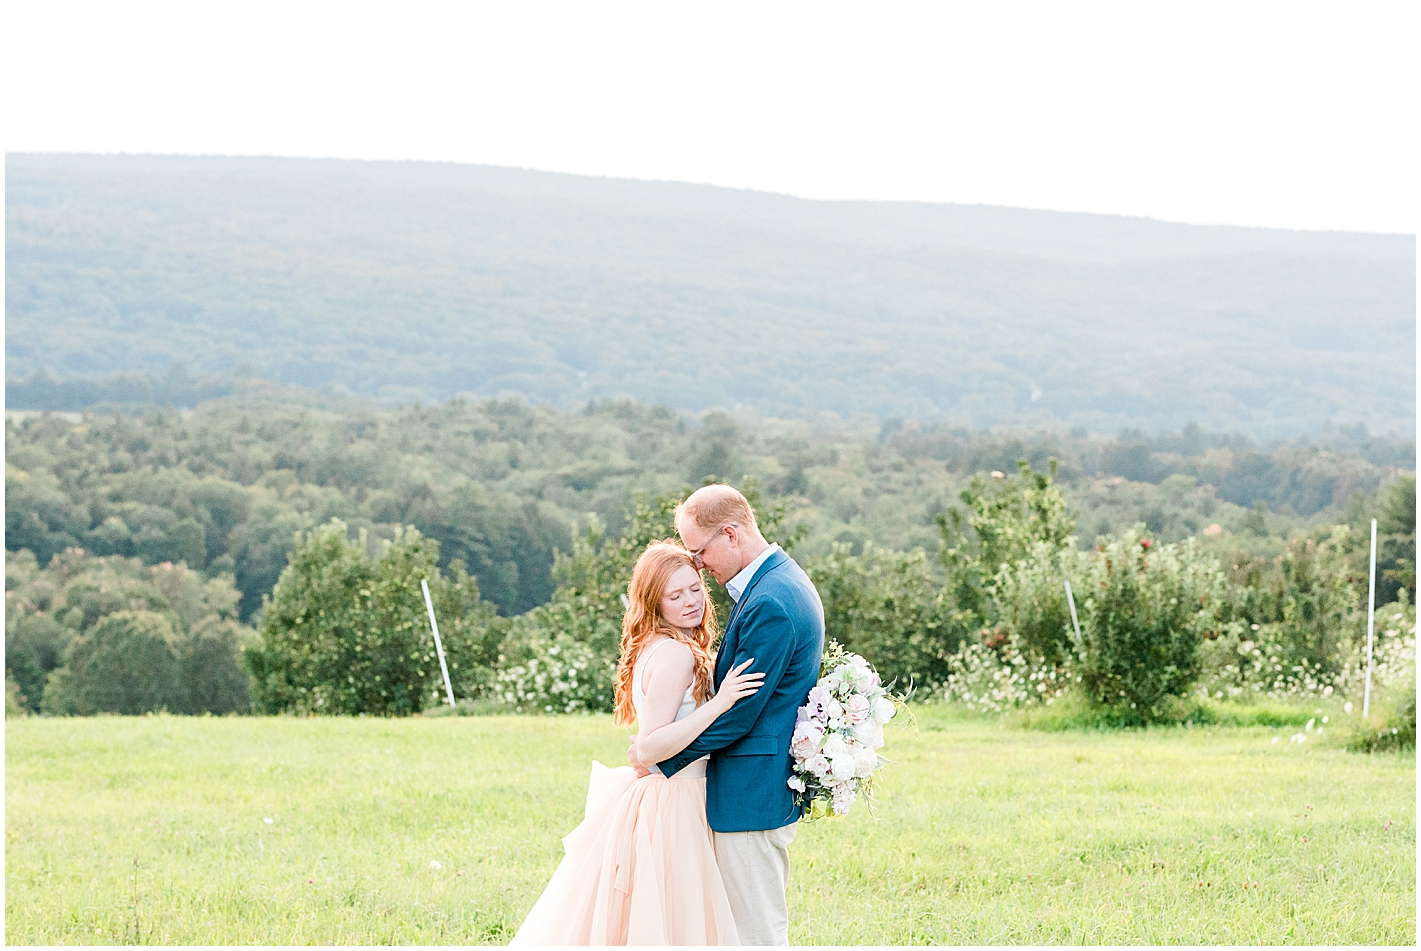 Pink flowy skirt engagement photos by Alyssa Parker Photography